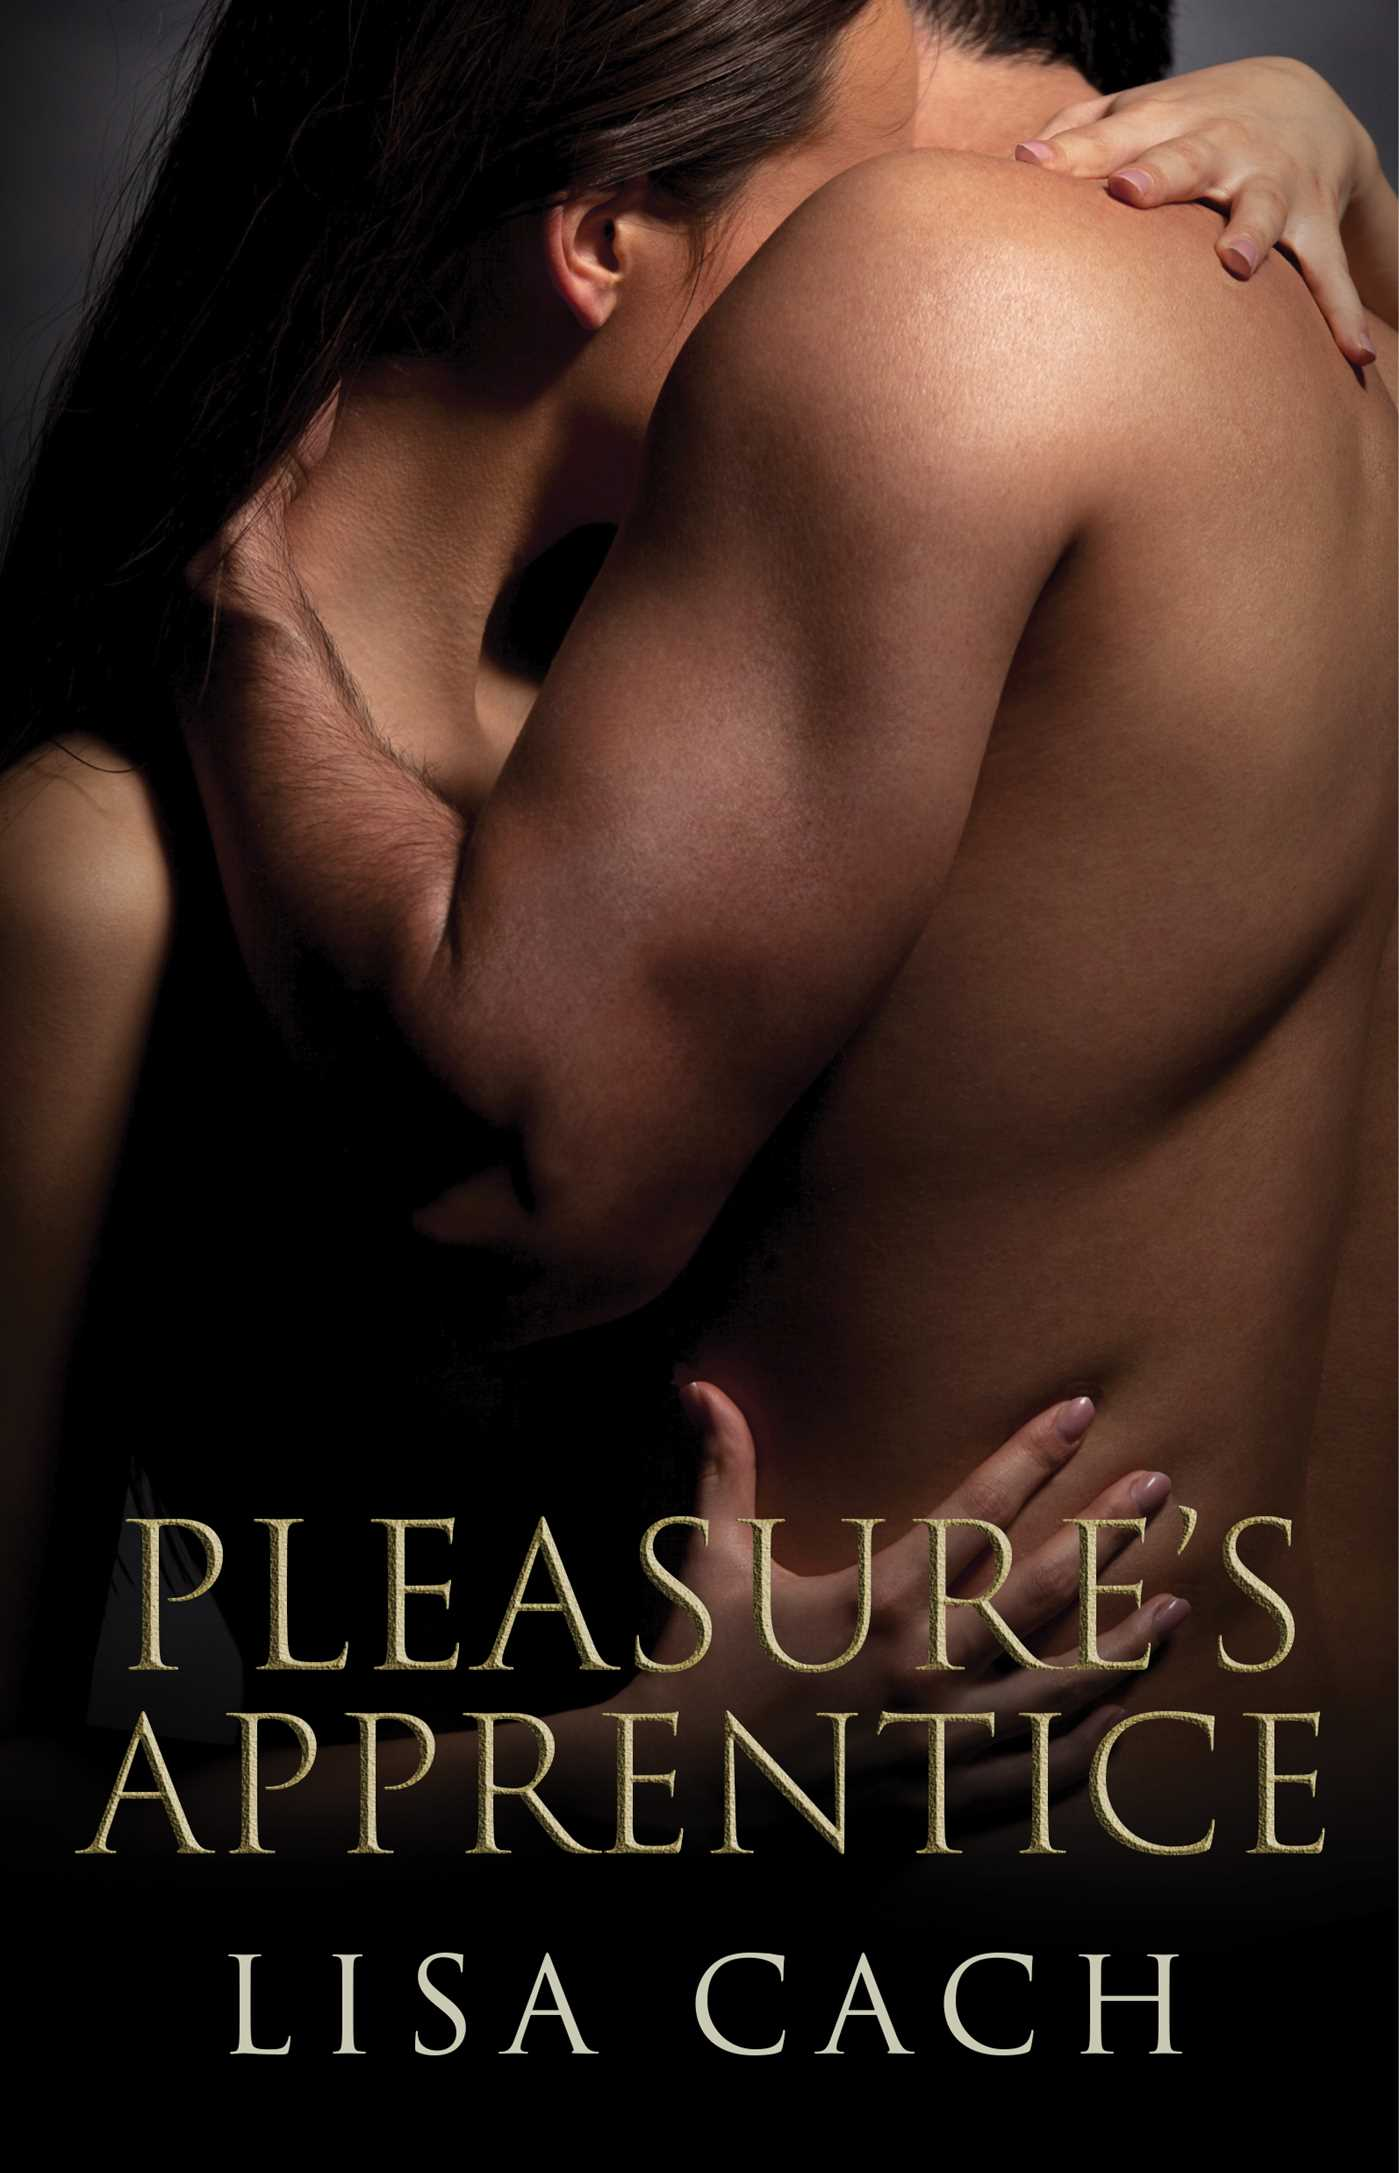 Pleasures apprentice 9781501110177 hr